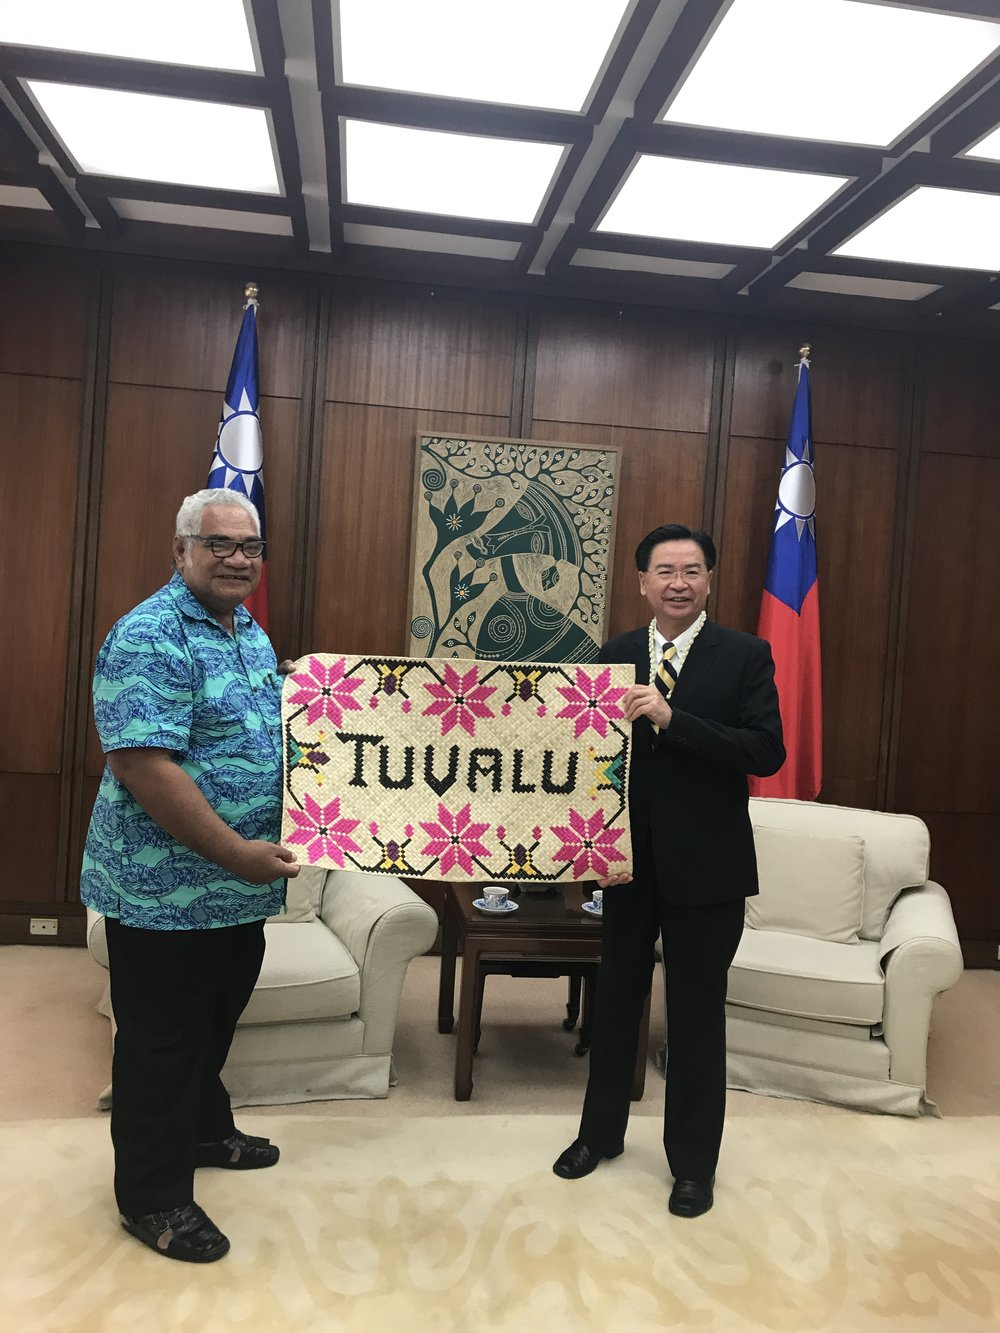 Hon. Minister Neemia presented the Tuvaluan handicrafts to Hon. Dr. Jaushieh Joseph Wu, Minister of Foreign Affairs, R.O.C. (Taiwan).